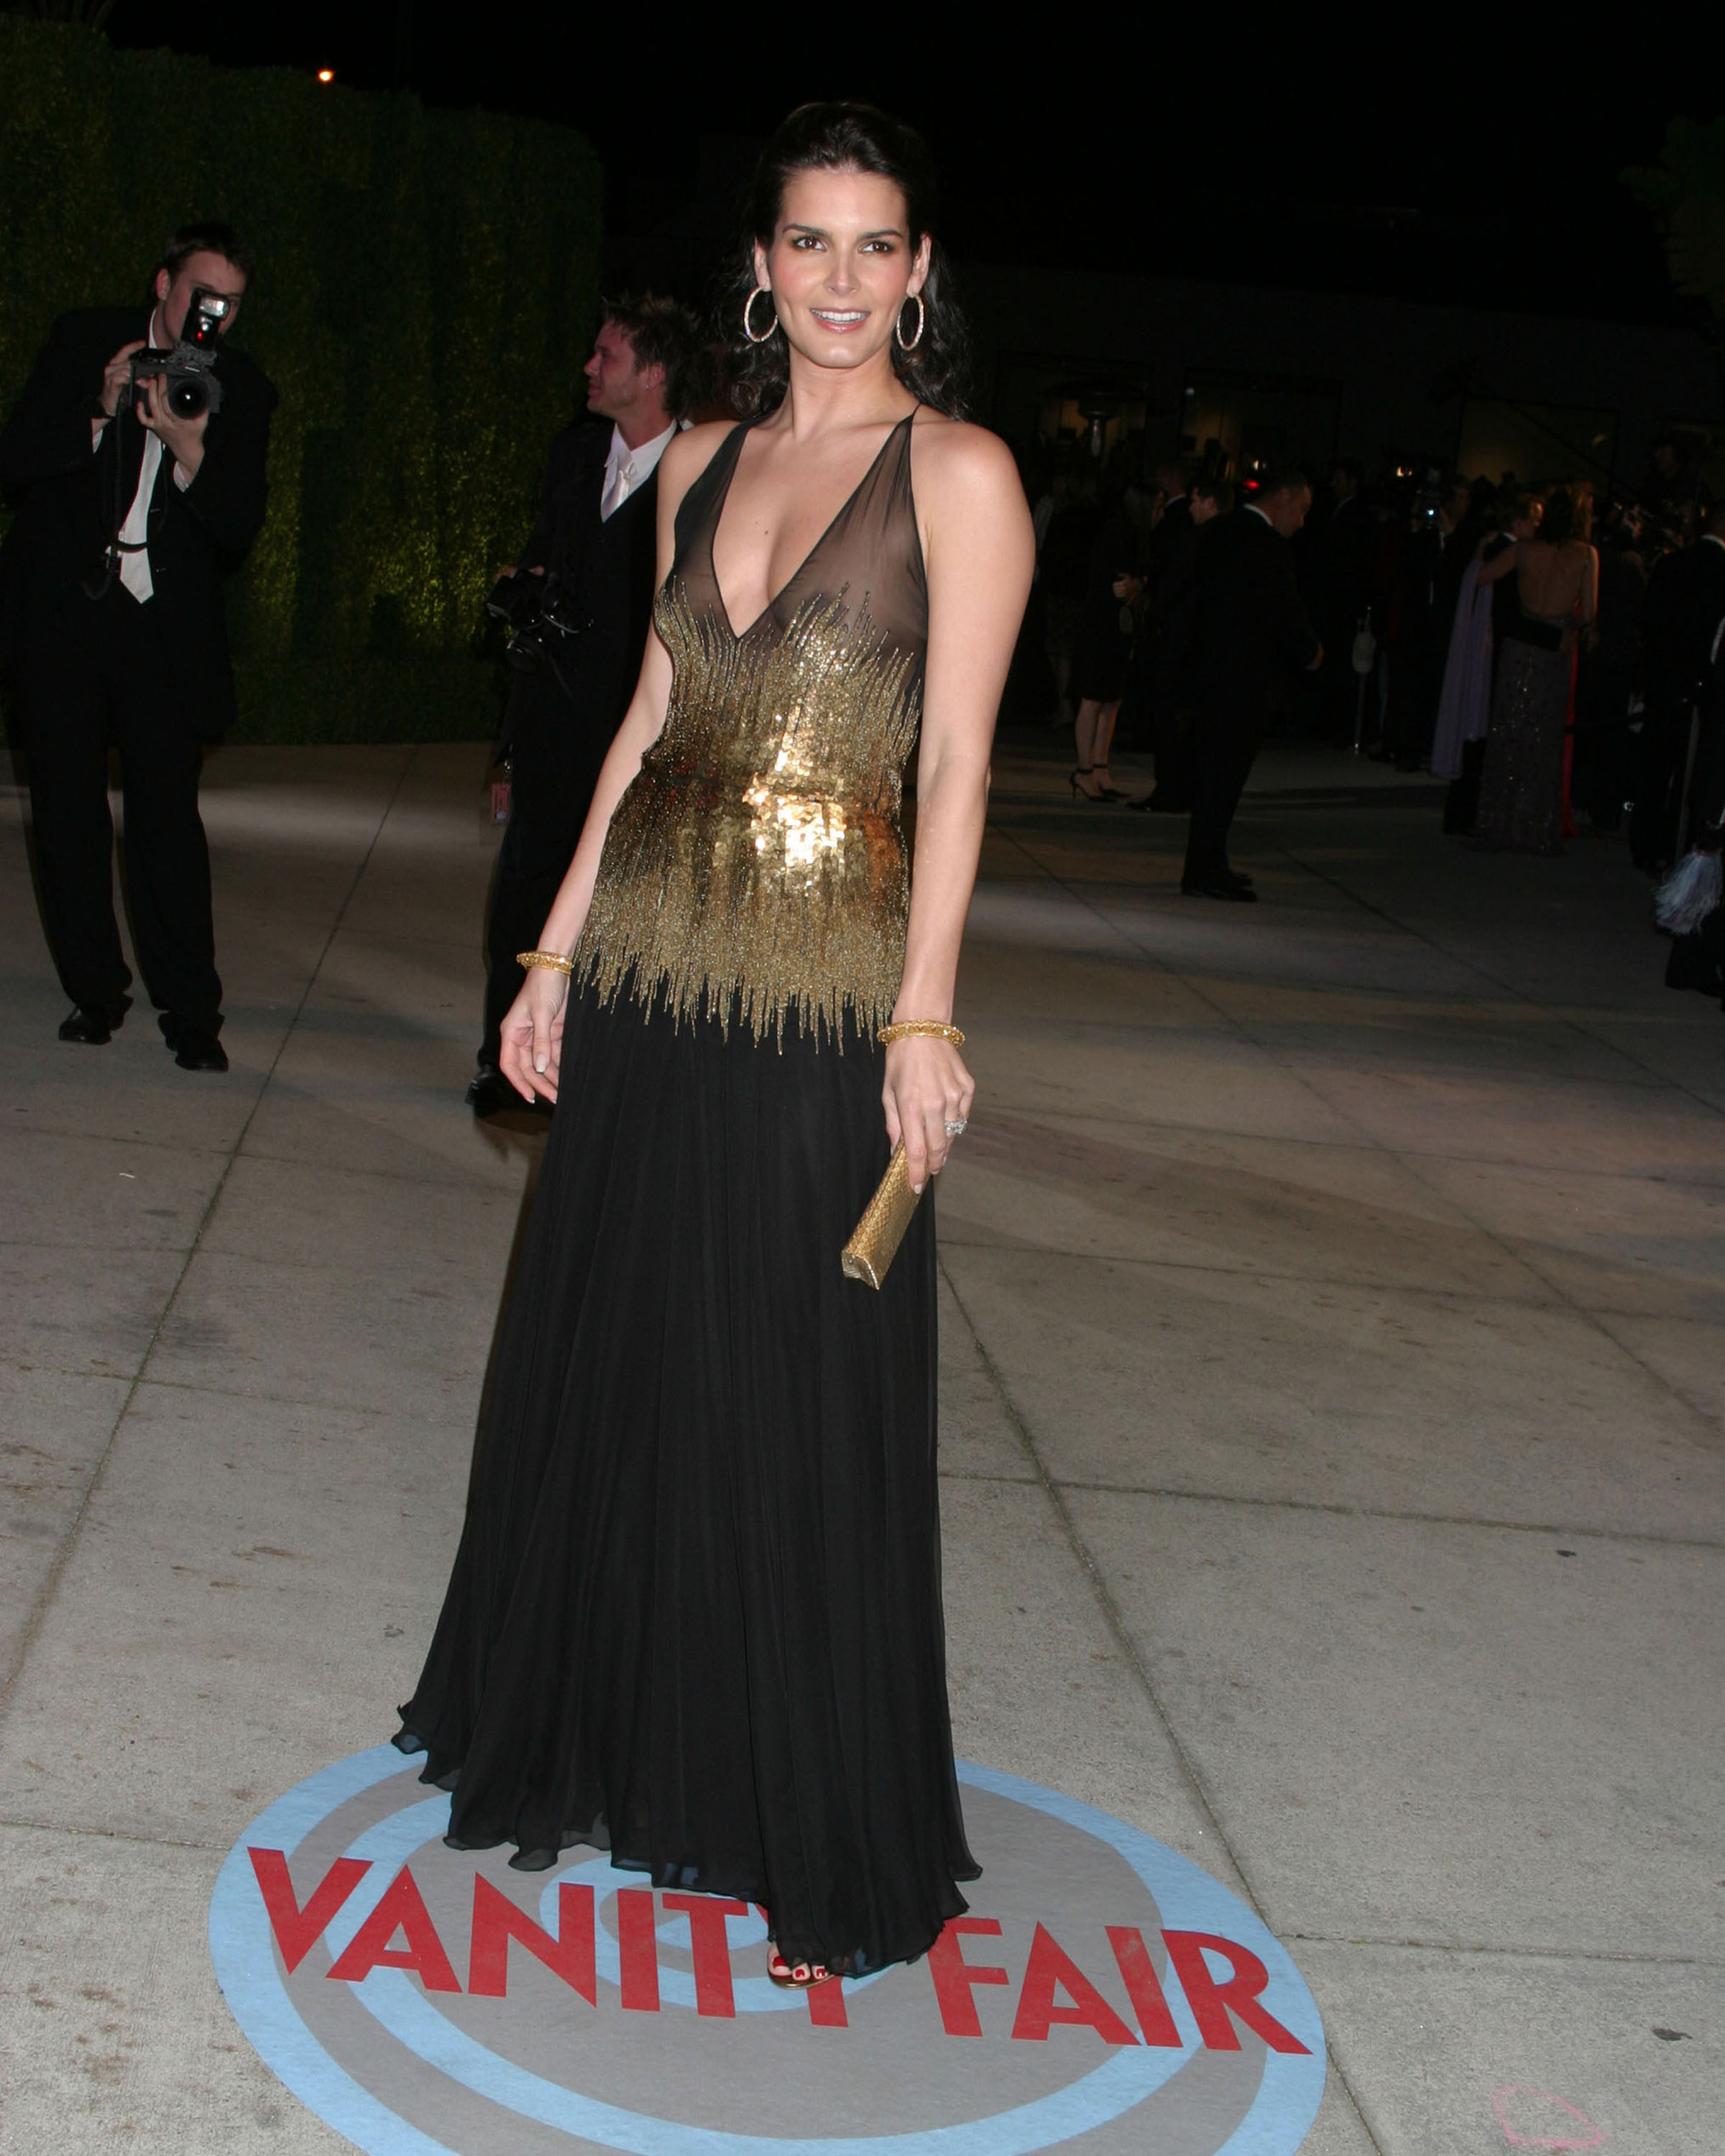 The message Angie harmon upskirt you were